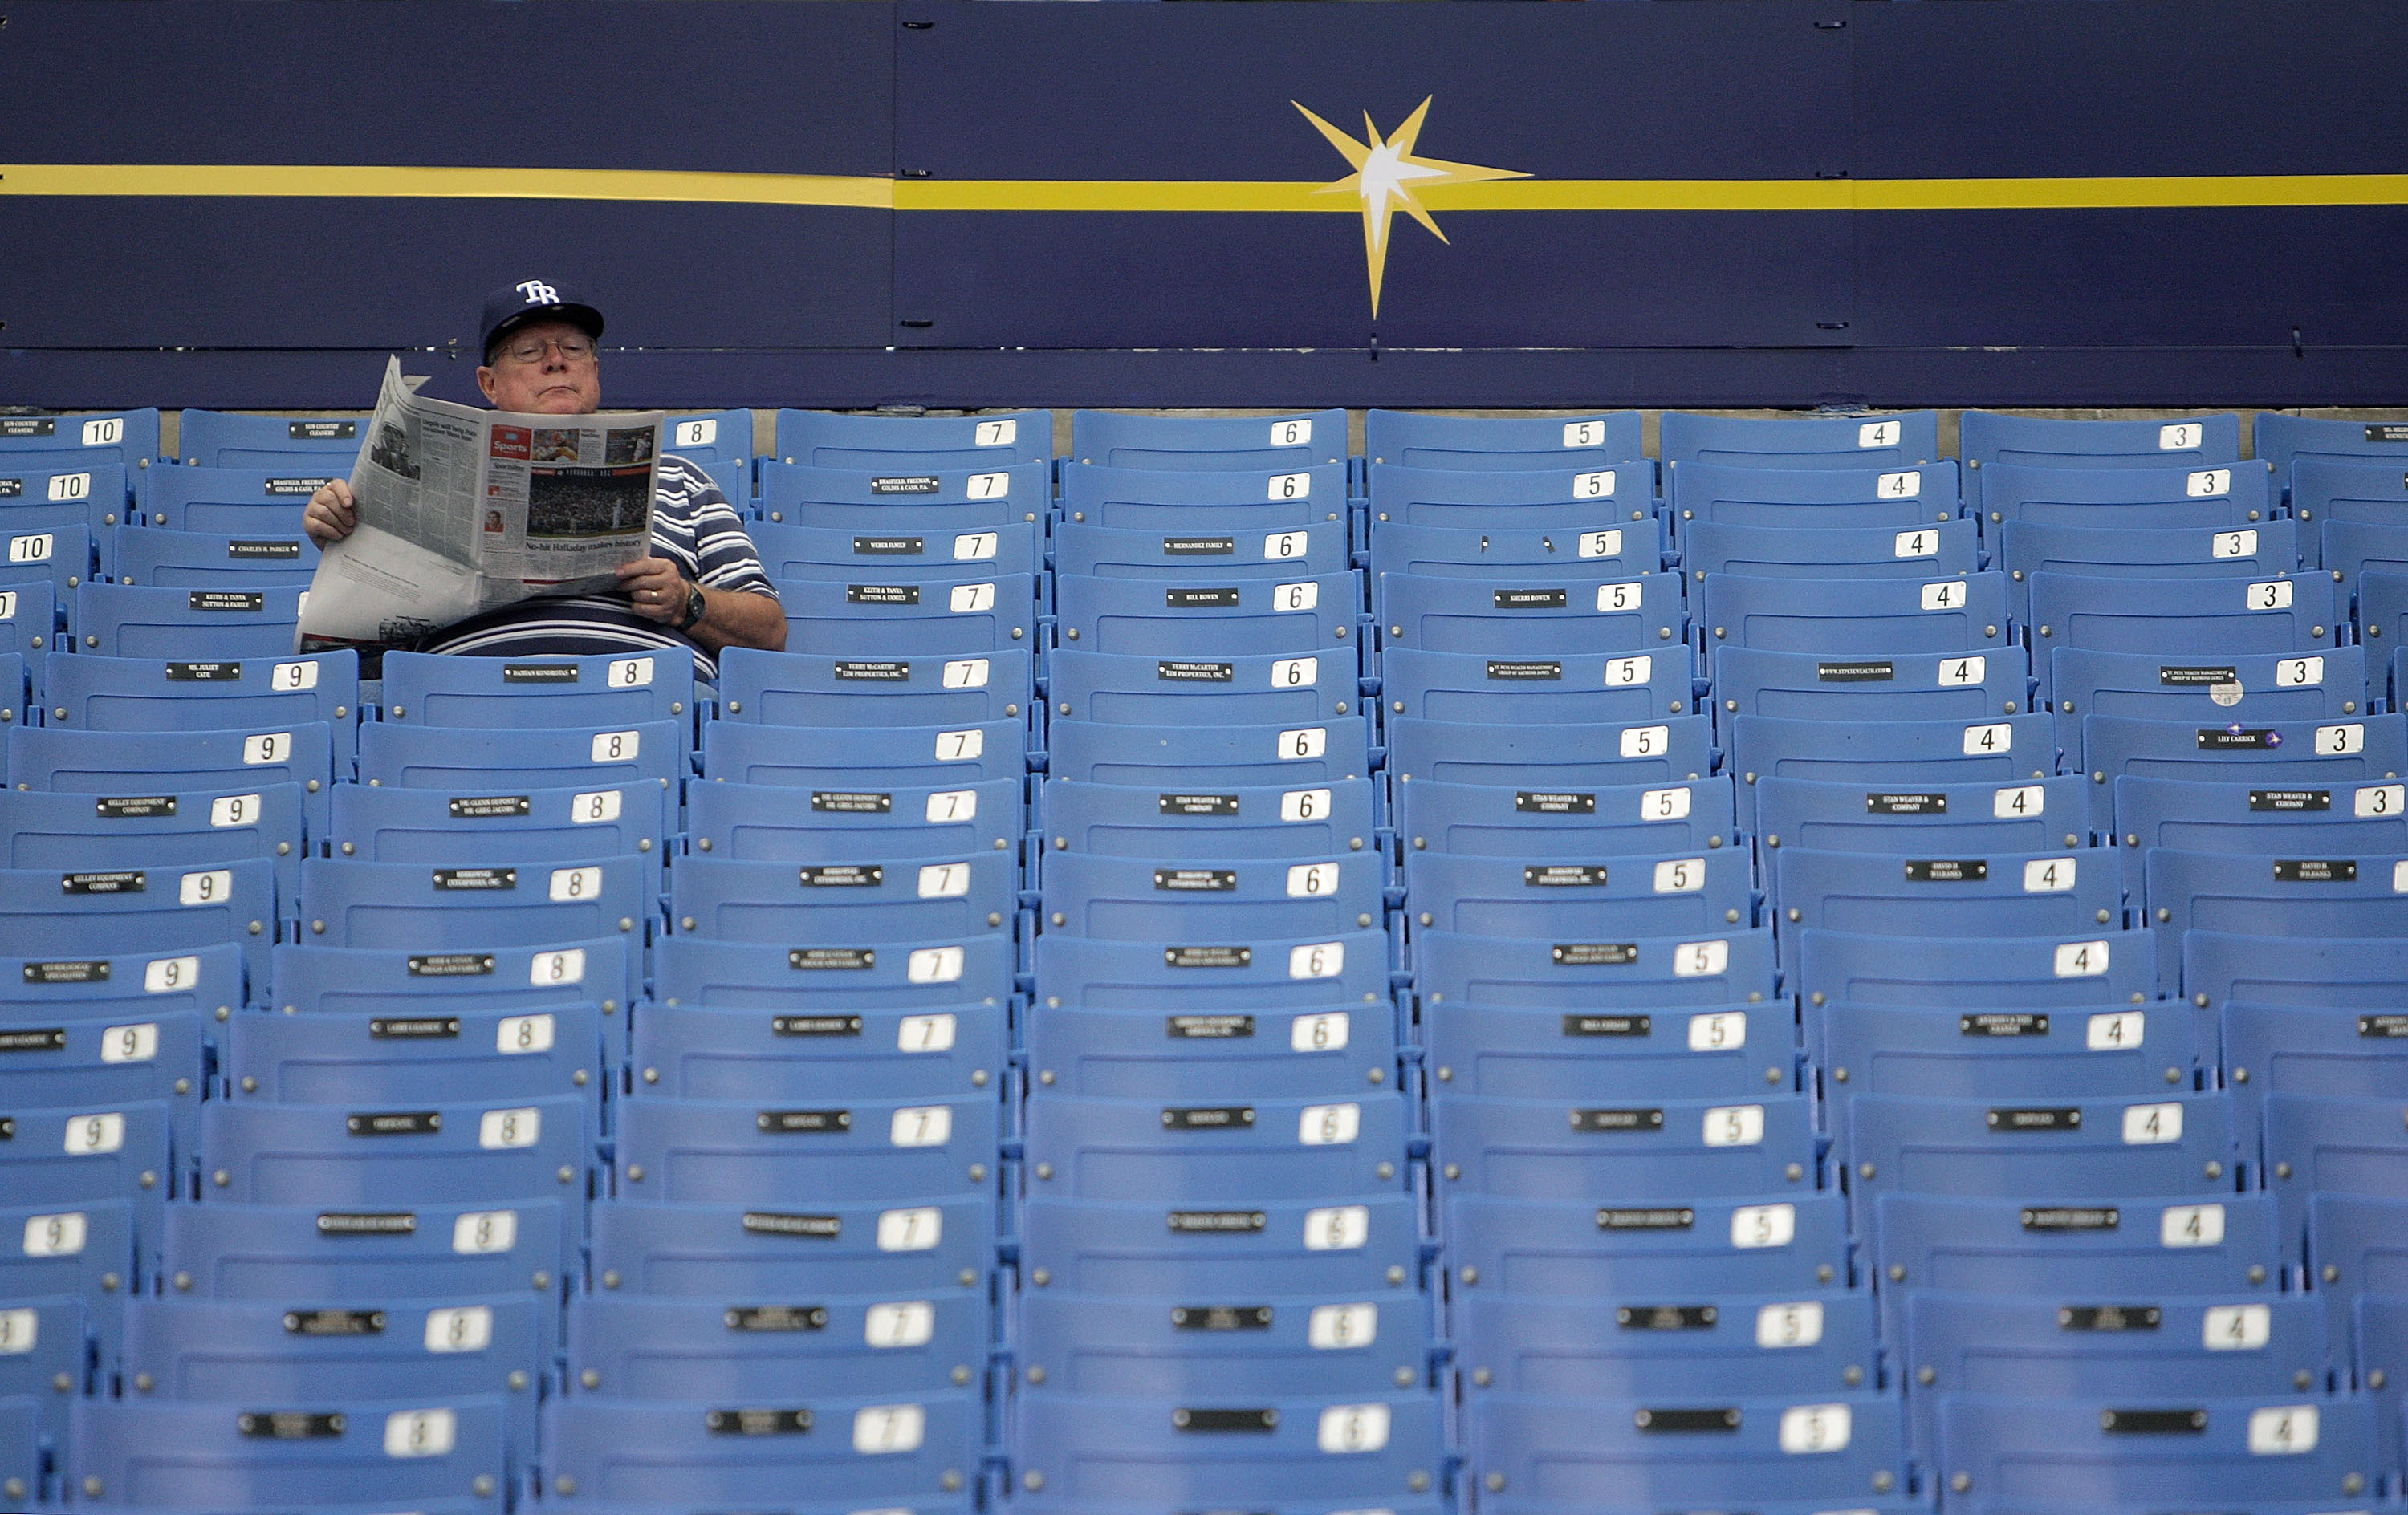 ST PETERSBURG, FL - OCTOBER 07:  A Tampa Bay Rays fan reads the paper before Game 2 of the ALDS between the Tampa Bay Rays and the Texas Rangers at Tropicana Field on October 7, 2010 in St. Petersburg, Florida.  (Photo by Mike Ehrmann/Getty Images)